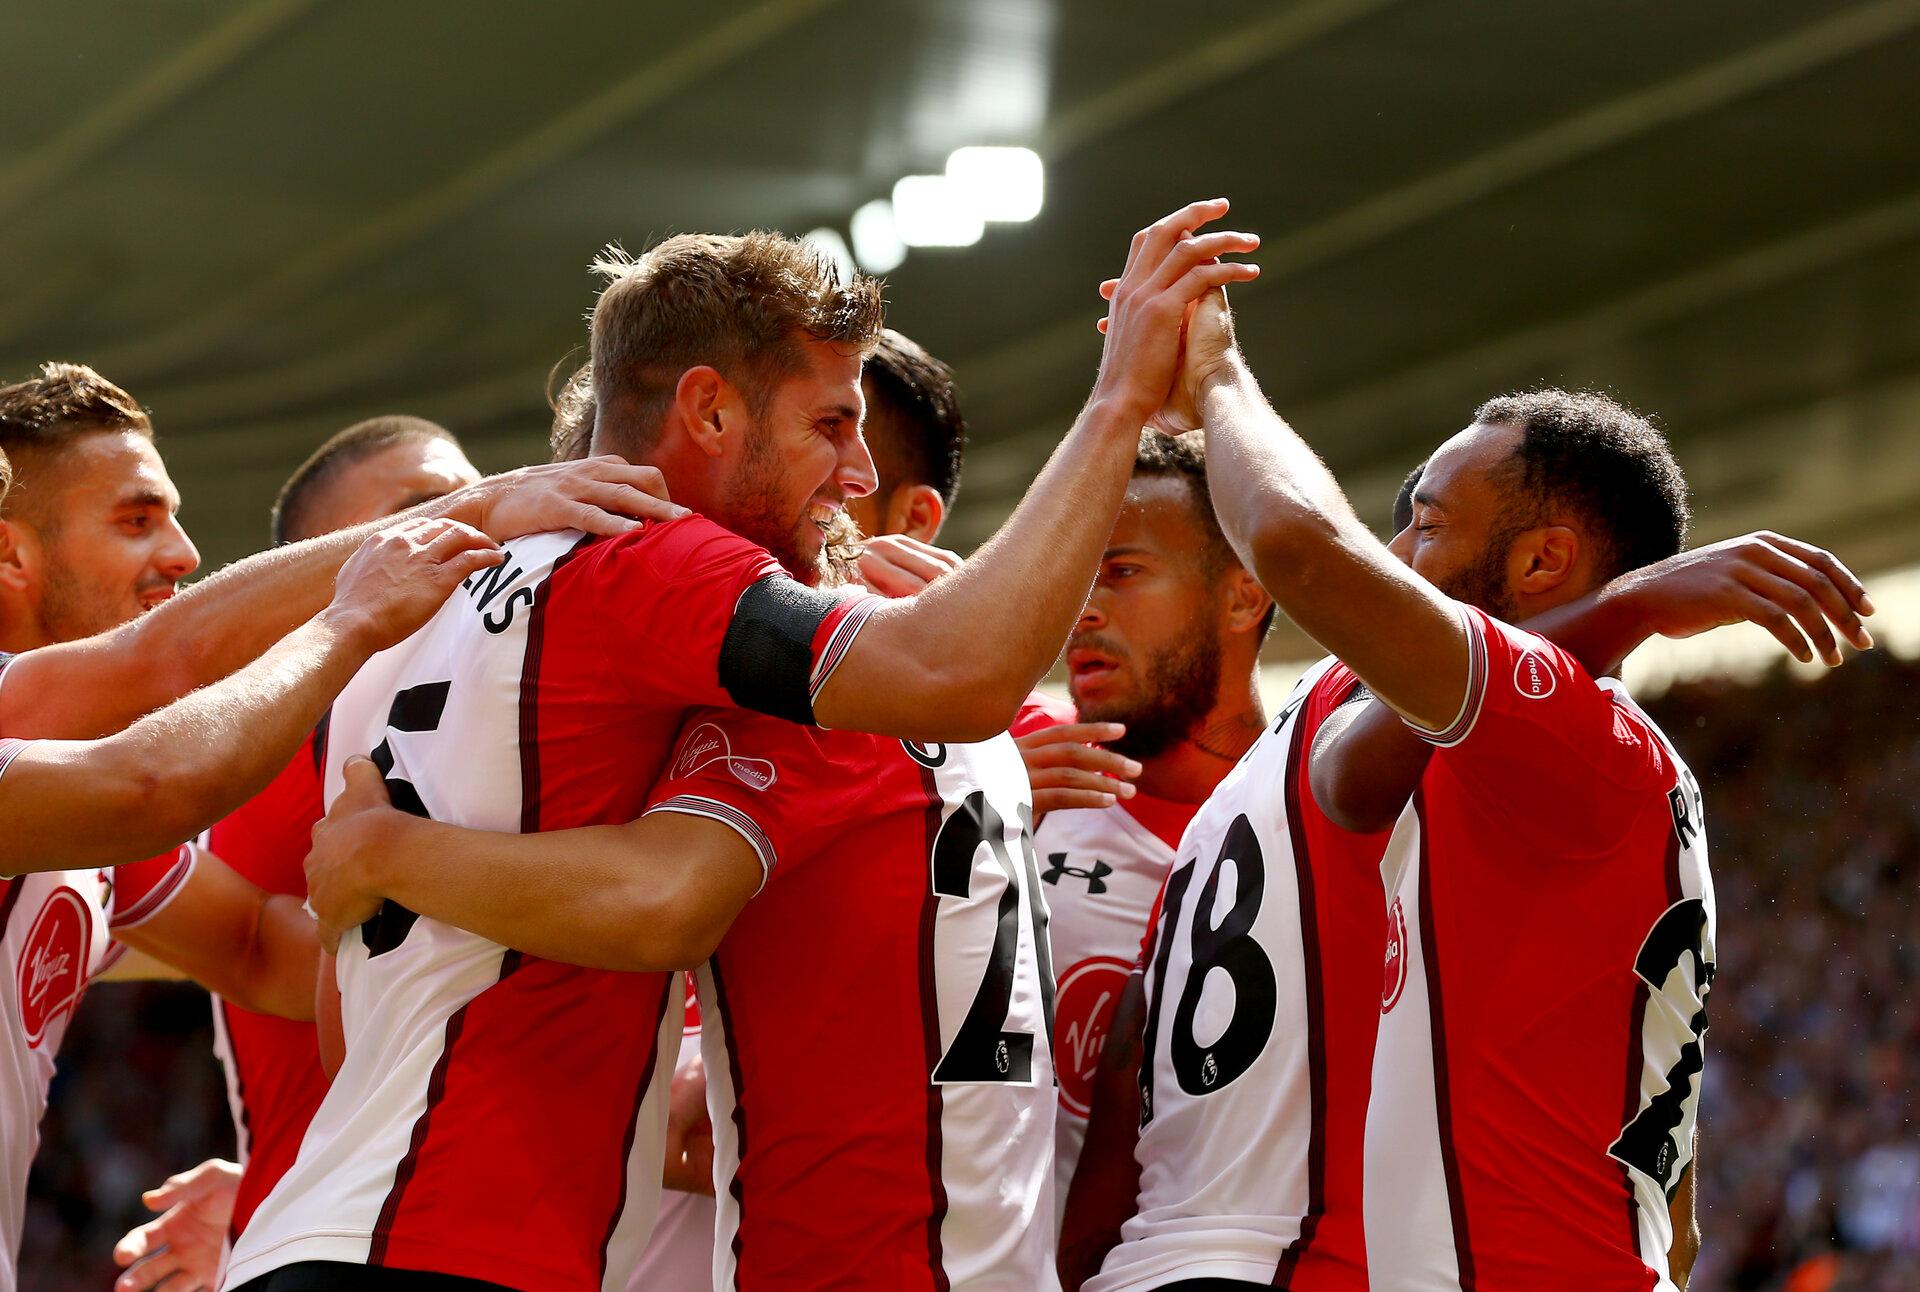 SOUTHAMPTON, ENGLAND - AUGUST 19: Southampton players celebrate during the Premier League match between Southampton and West Ham United at St Mary's Stadium on August 19, 2017 in Southampton, England. (Photo by Matt Watson/Southampton FC via Getty Images)